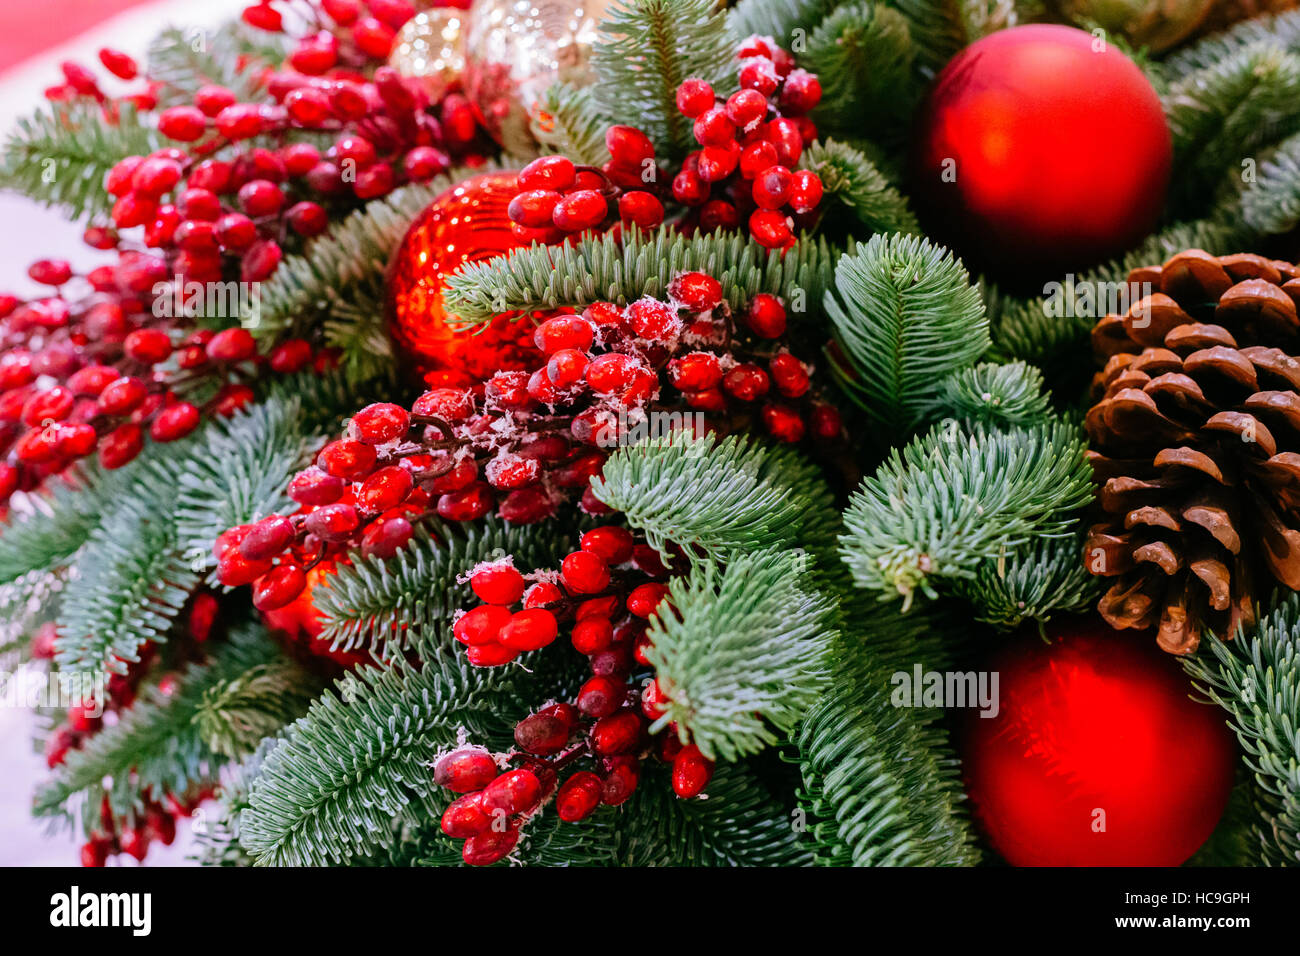 Christmas abstract background with red bauble decorations, mistletoe - Stock Image